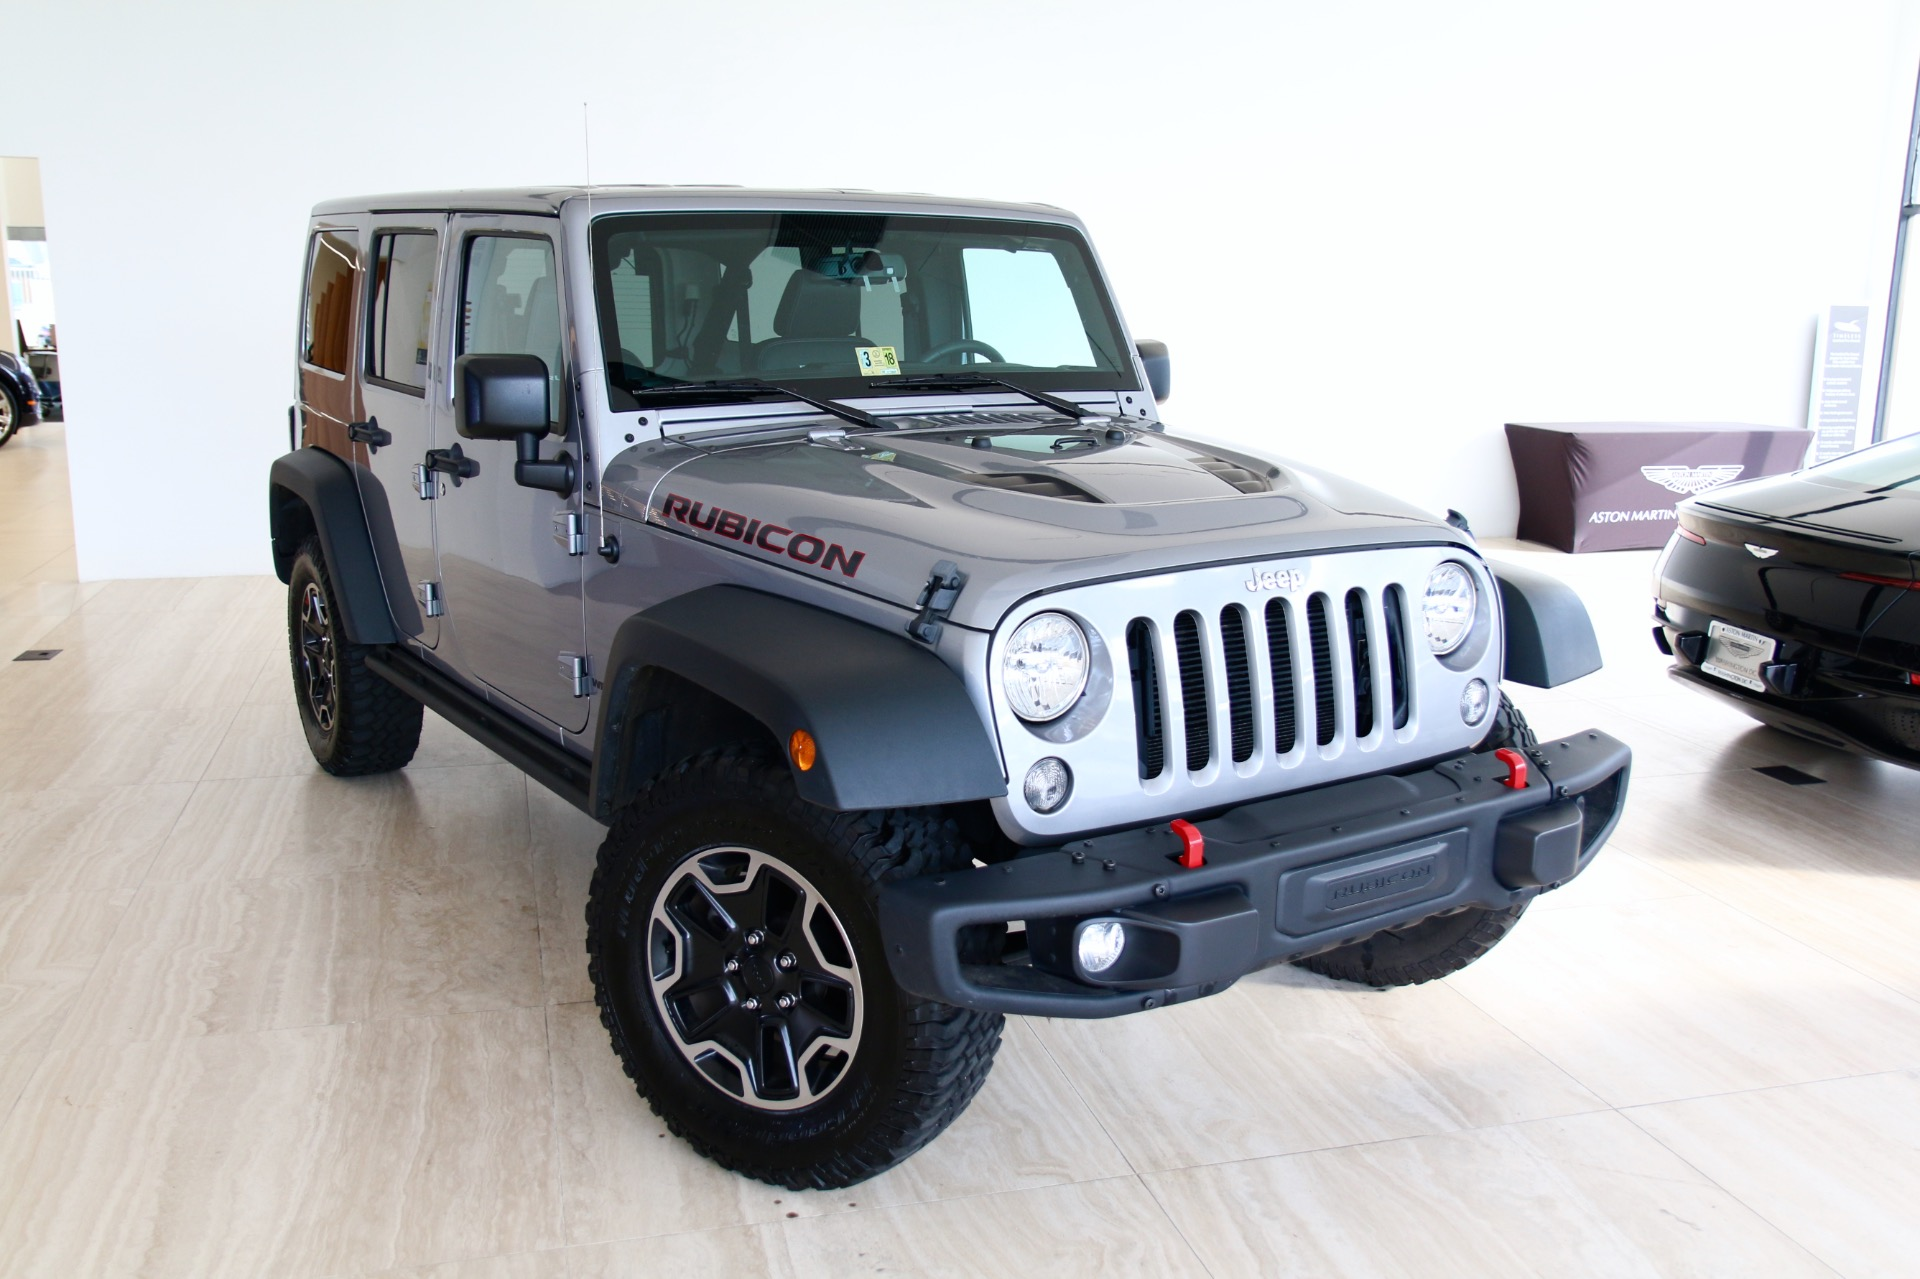 2015 Jeep Wrangler Unlimited Rubicon Hard Rock Stock 7nl02917b For Fuel Filter Used Vienna Va